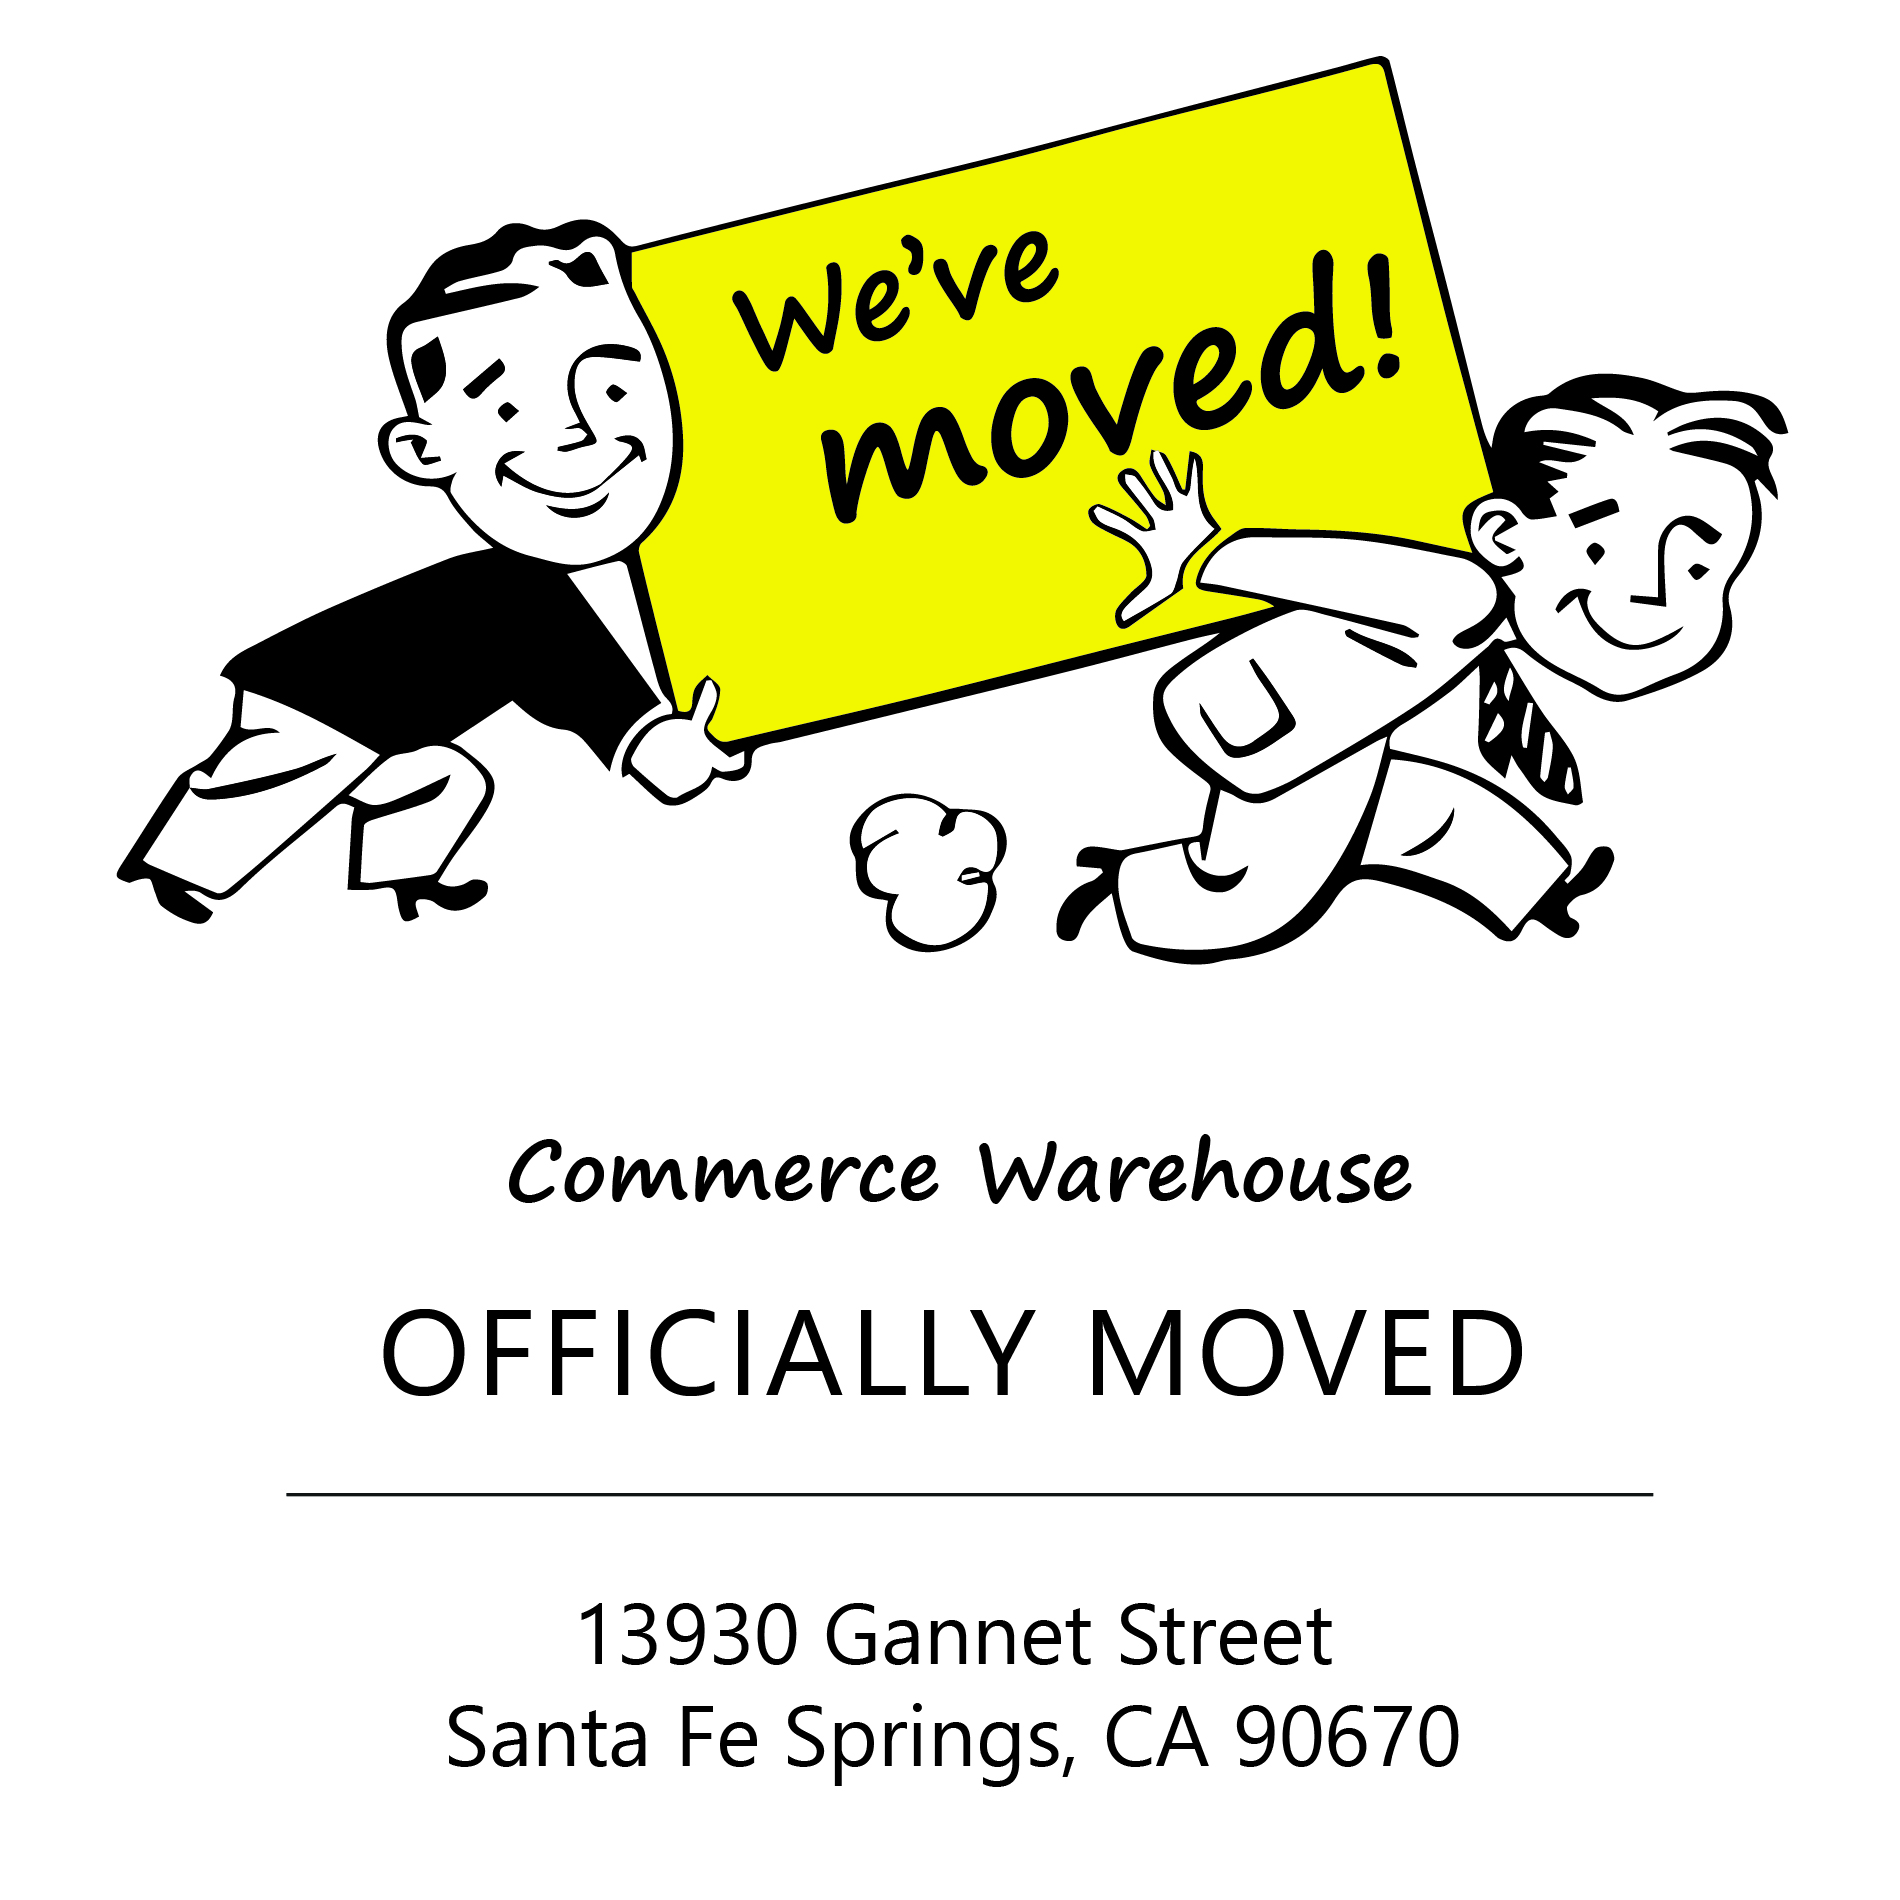 Weve moved to a new location in Santa Fe Springs, California.